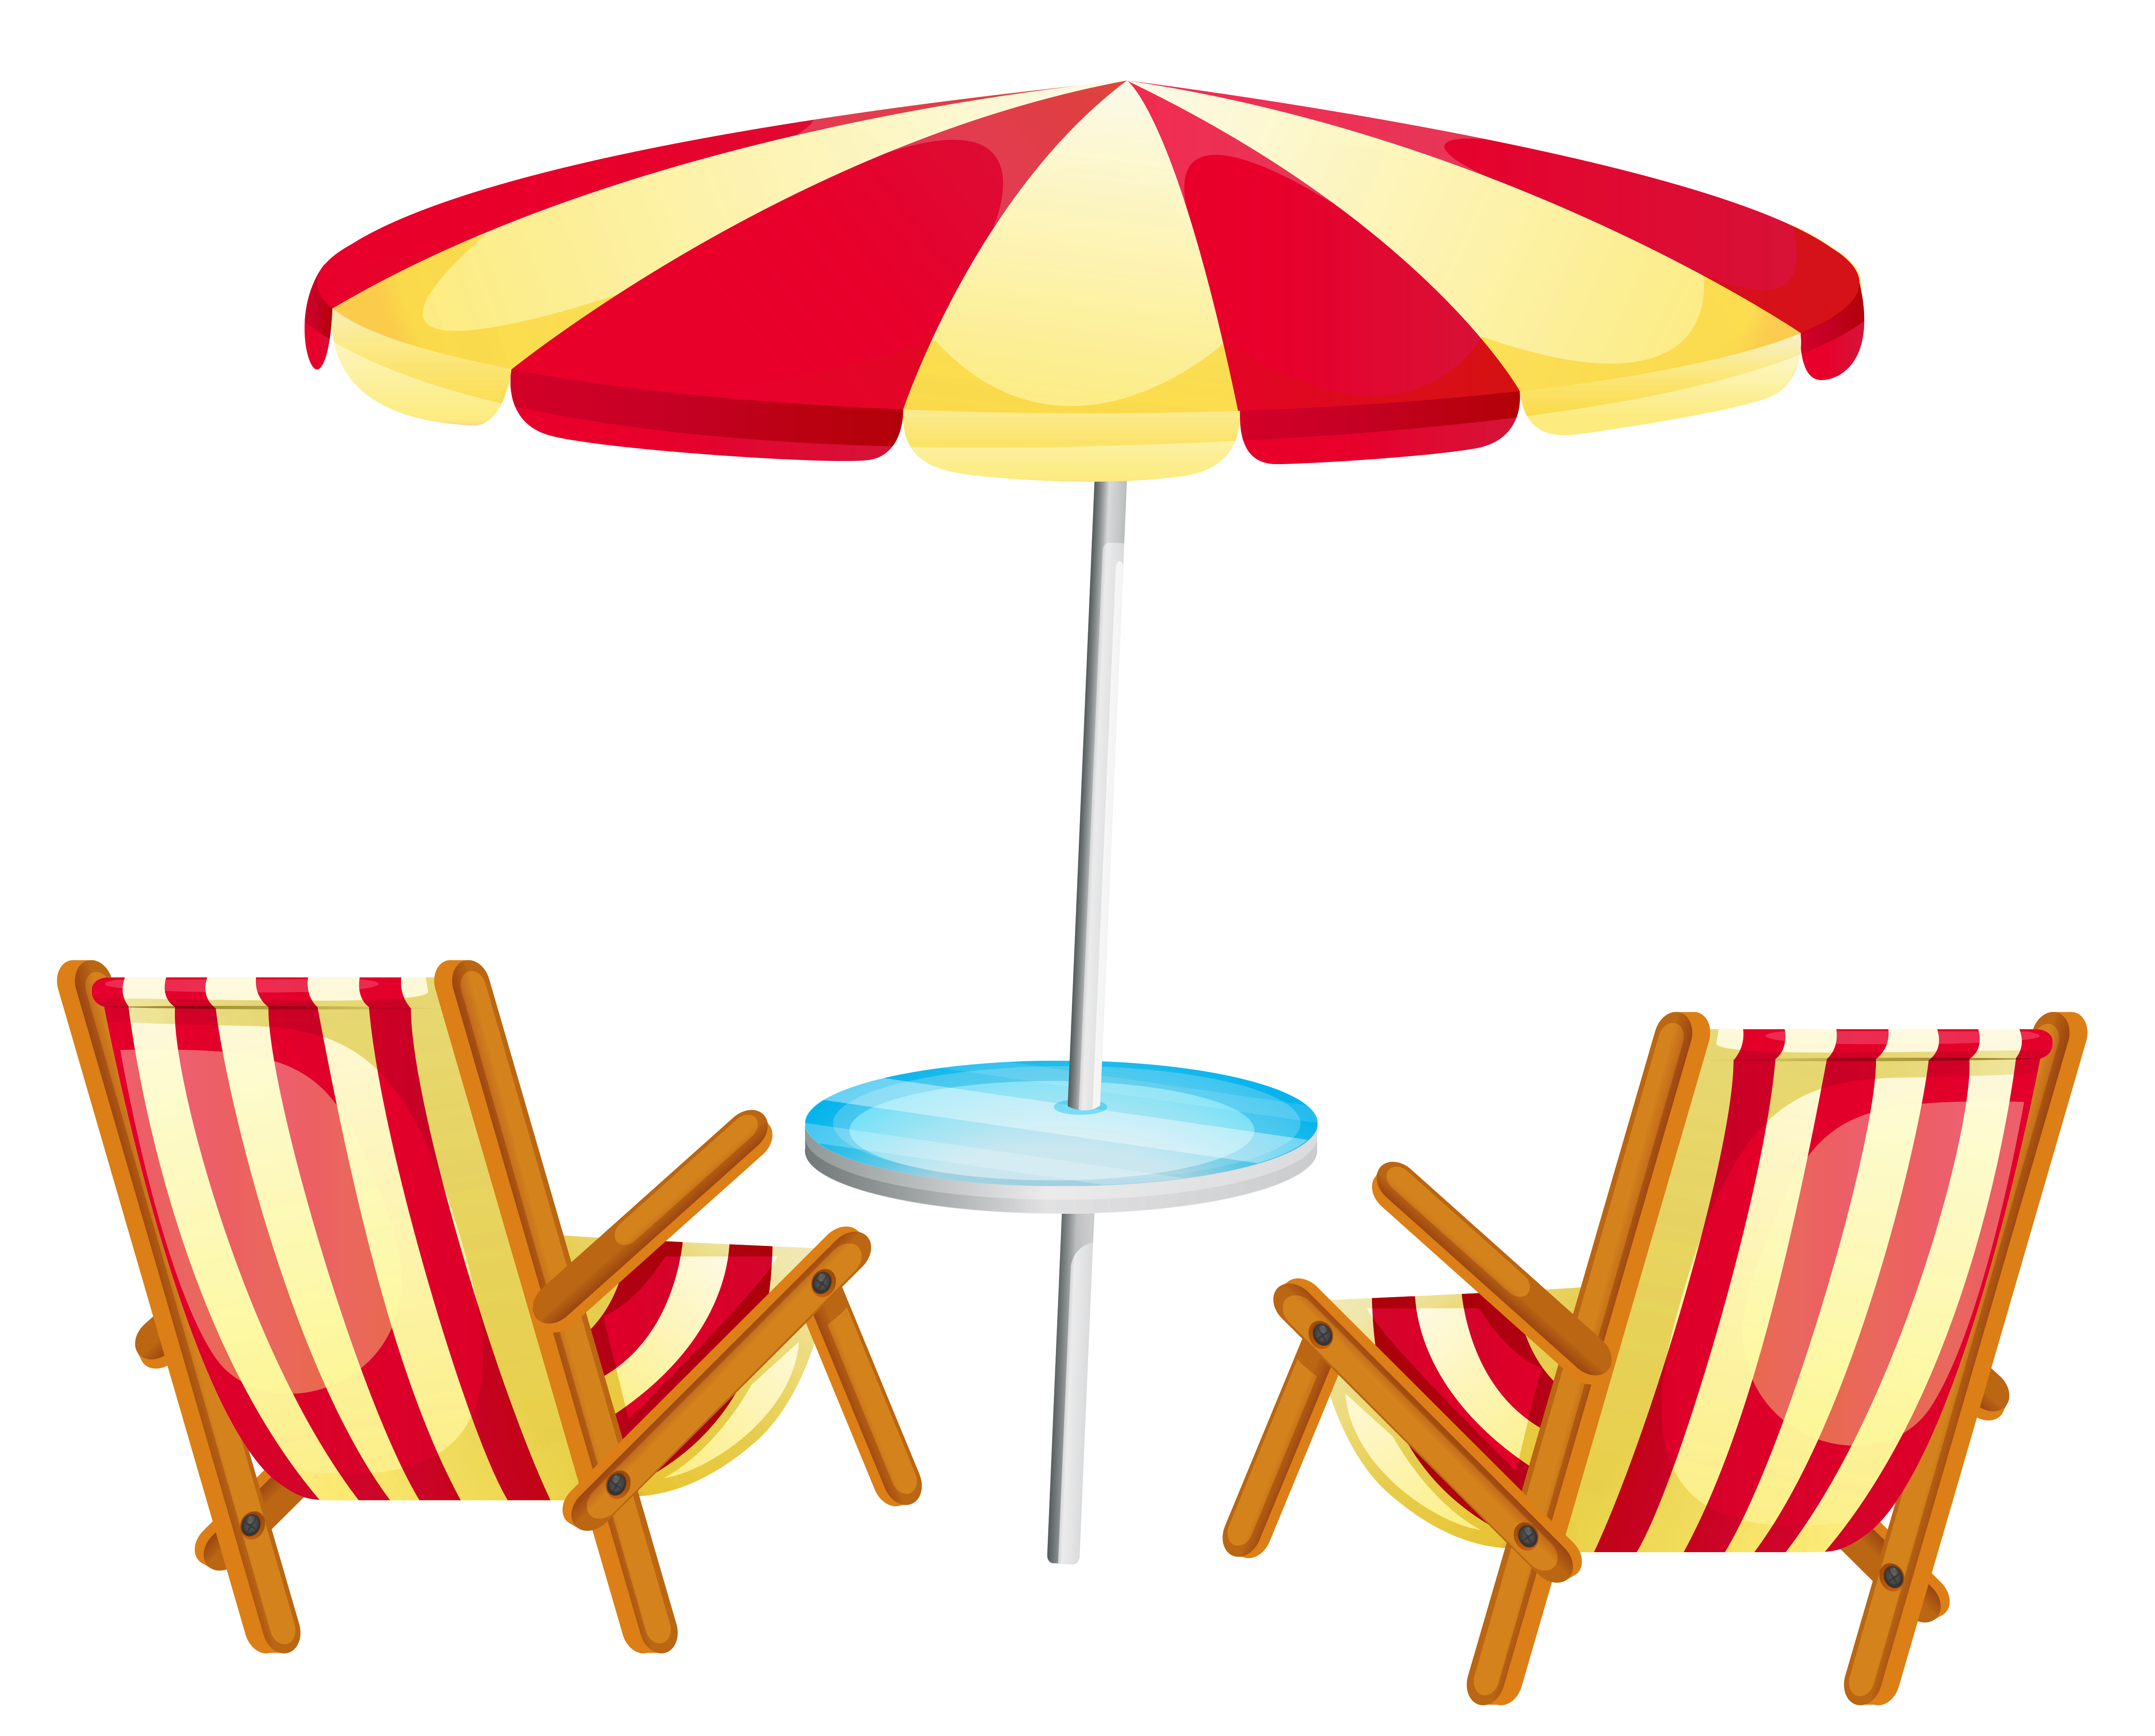 5298x4268 Transparent Beach Umbrella With Chairs Png Clipartu200b Gallery